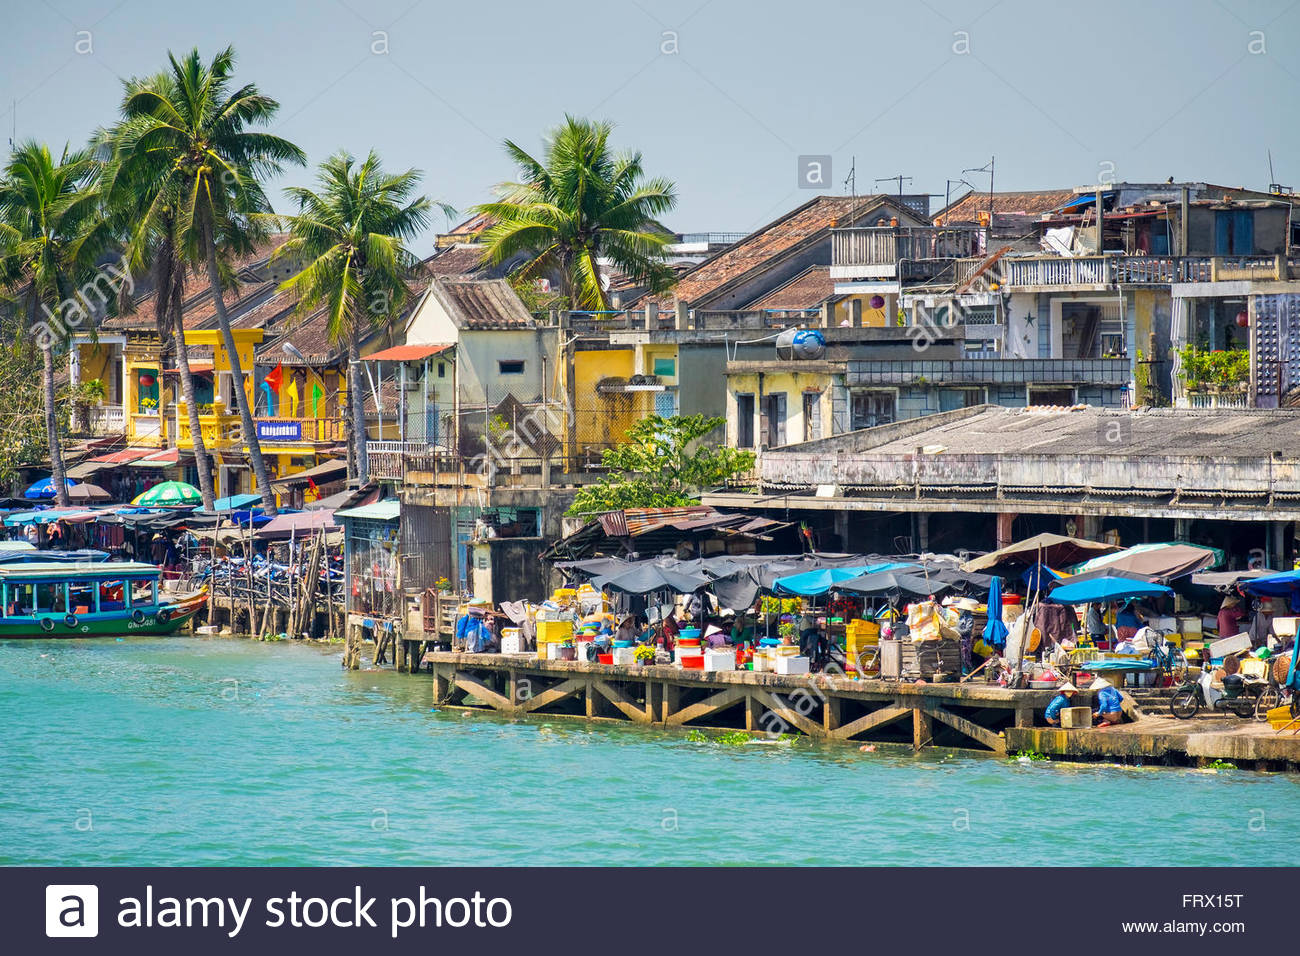 Town of Hoi An on the Thu Bon River, Quang Nam Province, Vietnam - Stock Image